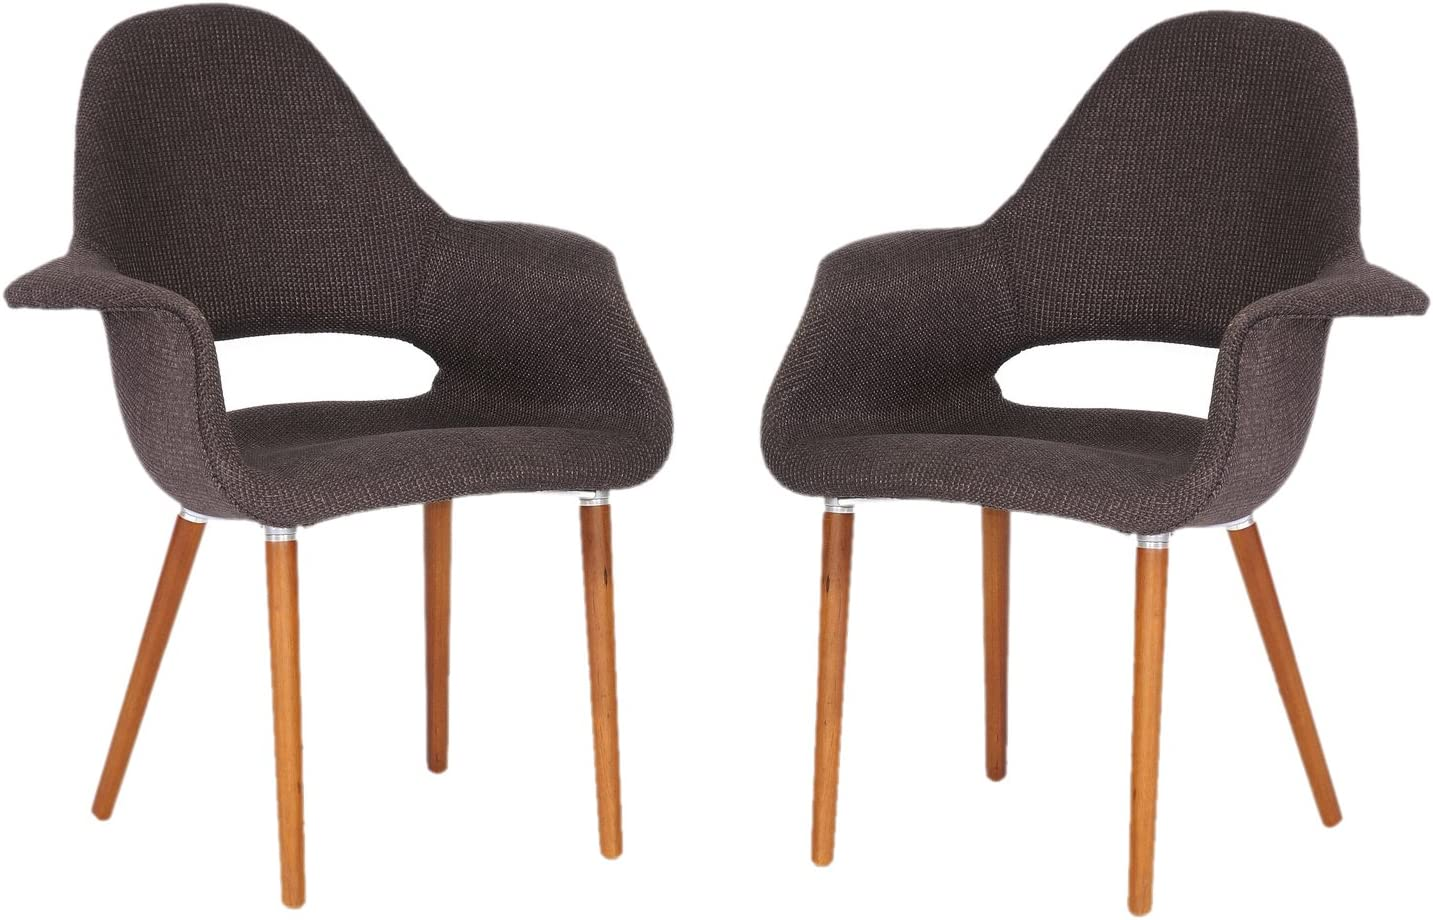 Baxton Studio Forza Fabric Mid-Century Modern Arm Chair, Dark Brown, Set of 2